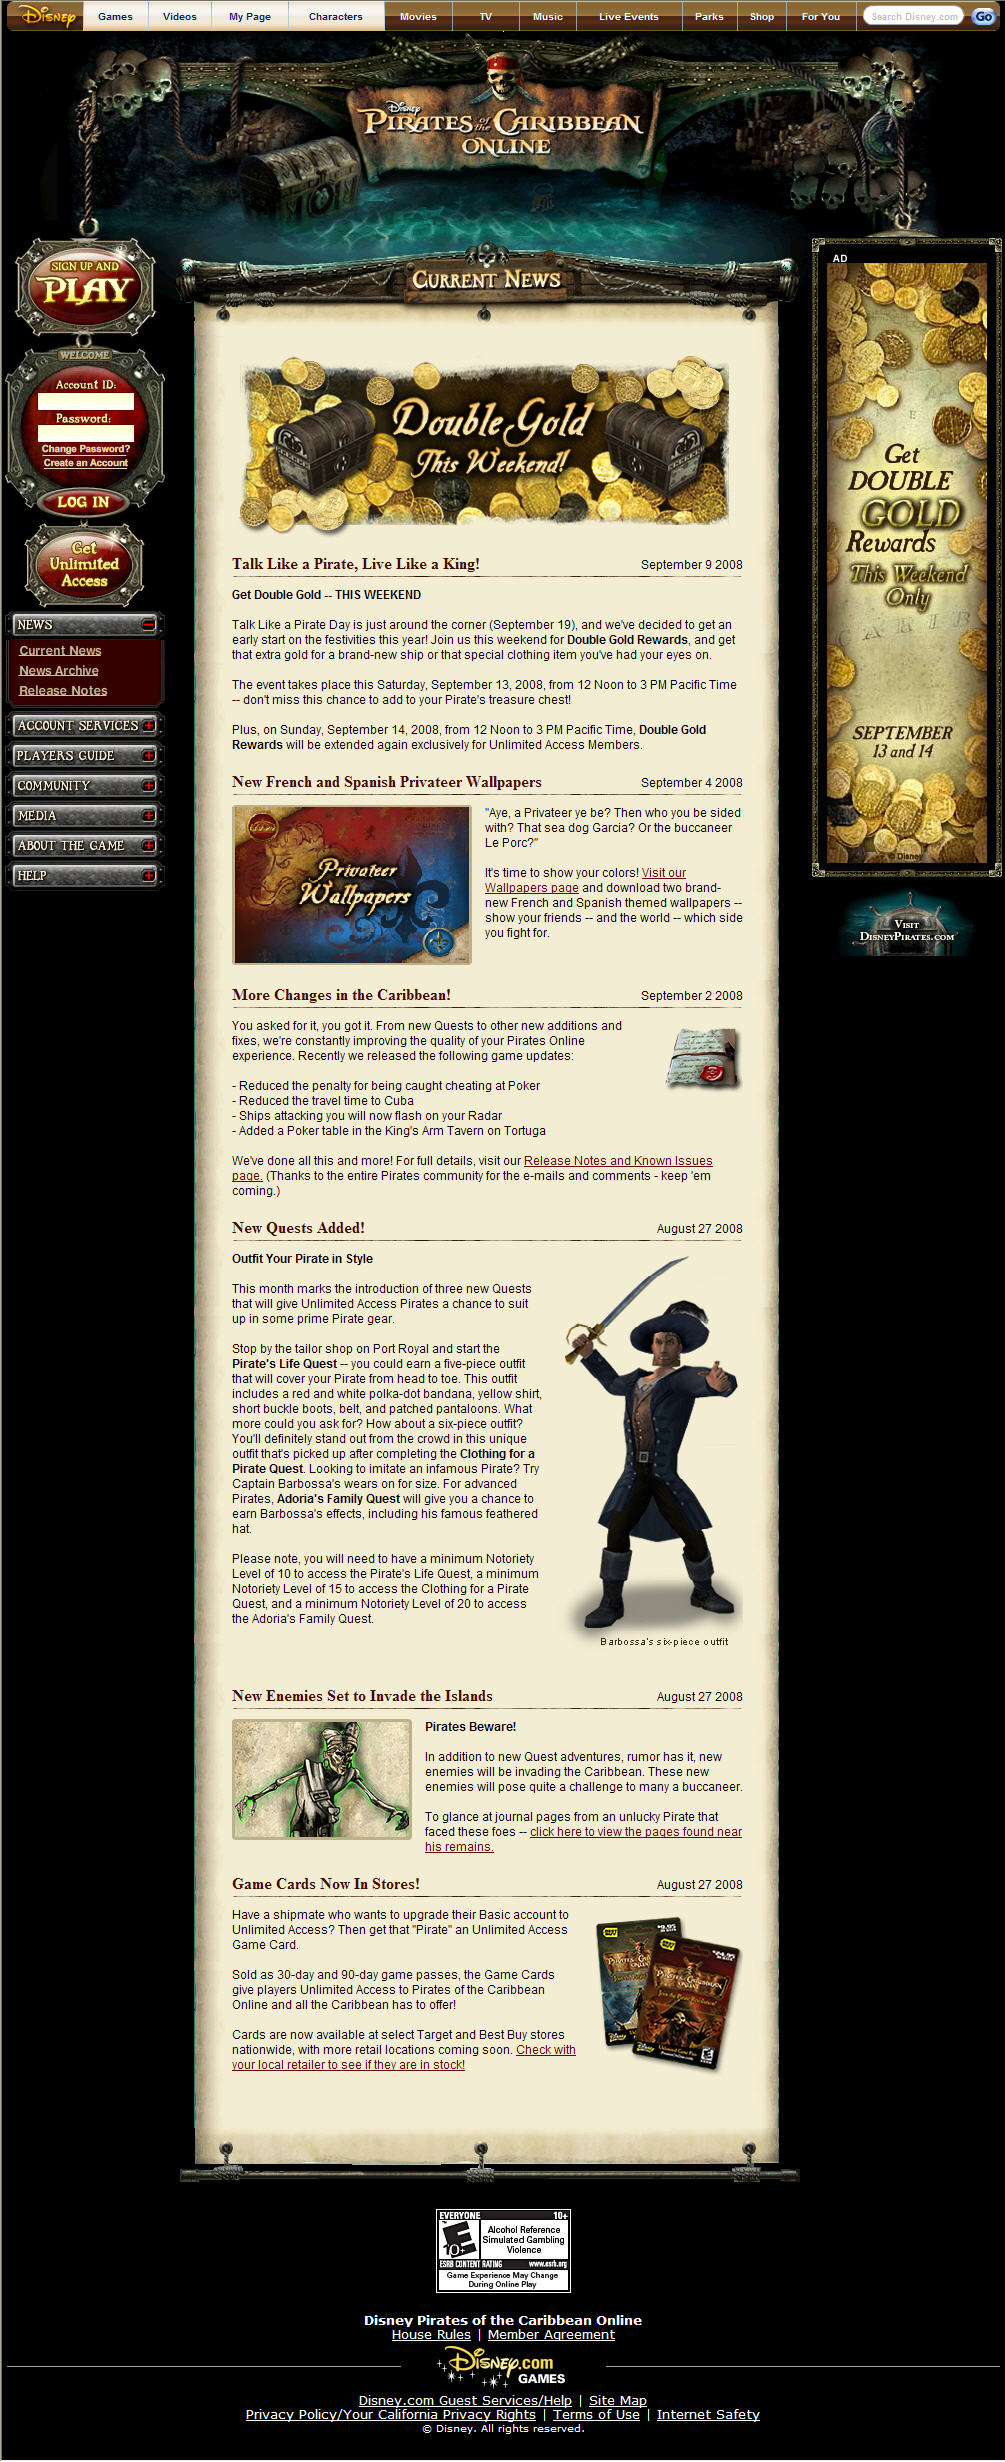 Pirates of the Caribbean Online image